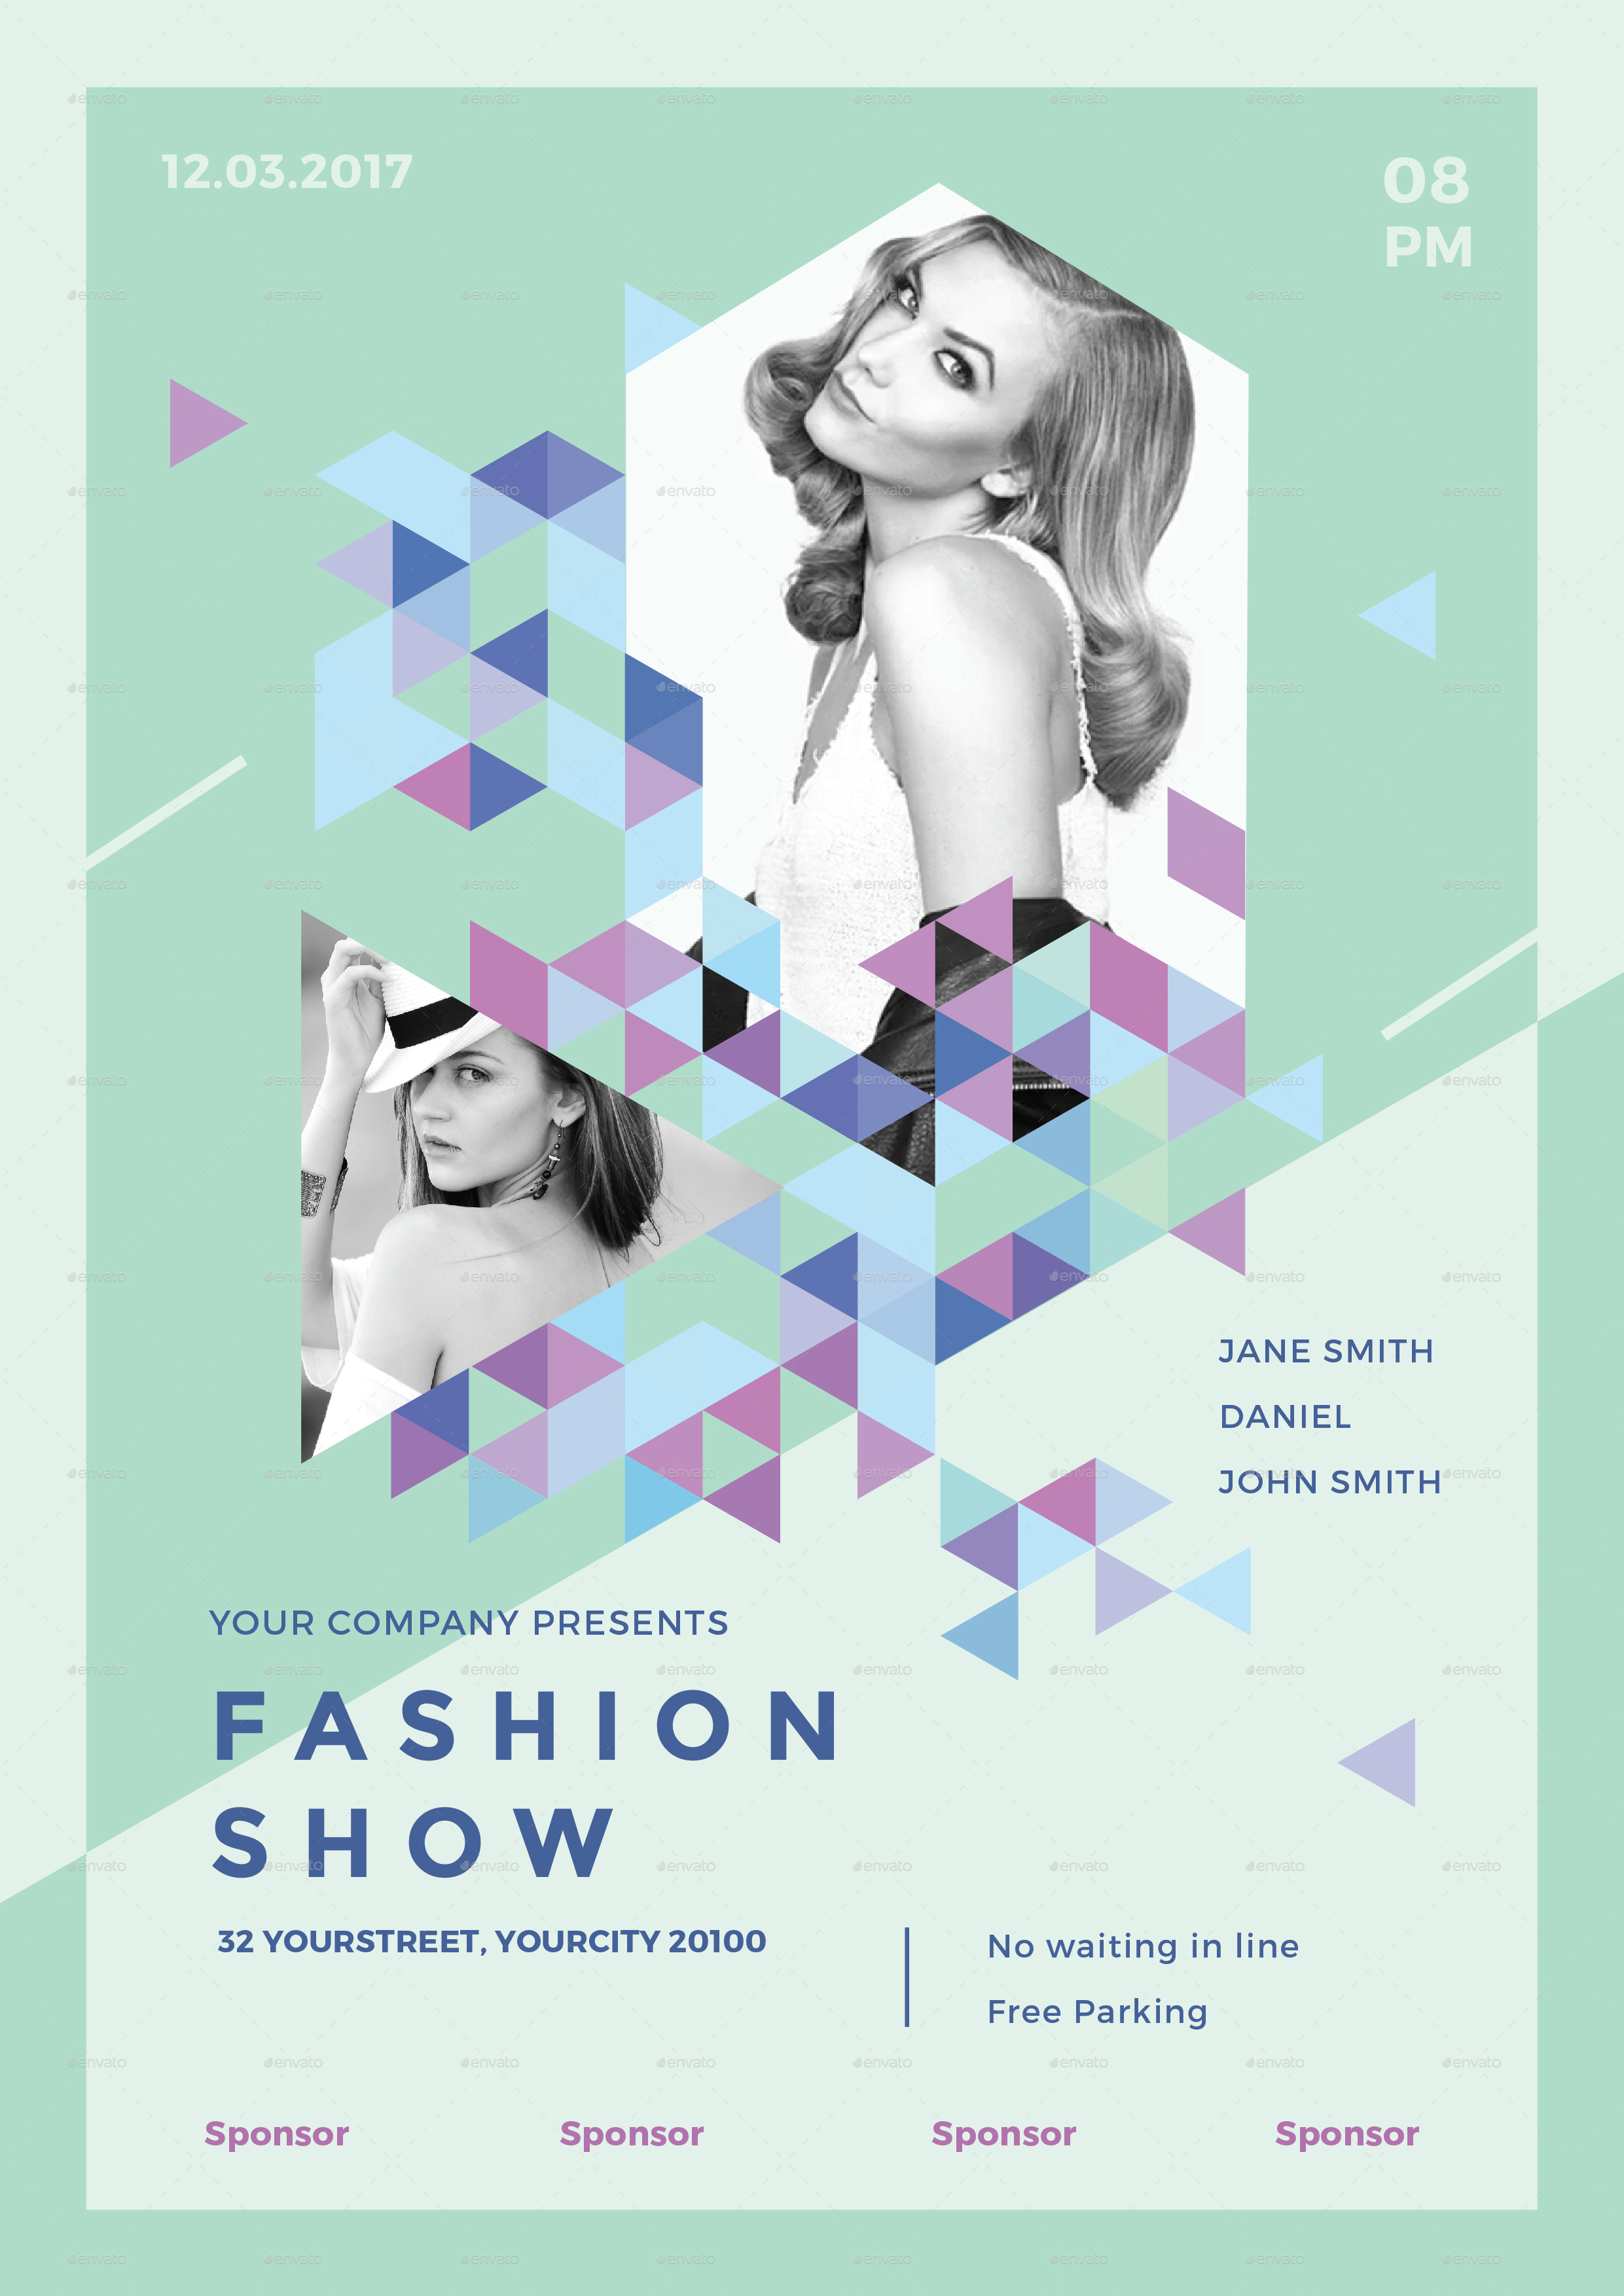 Fashion Show Poster Design Images